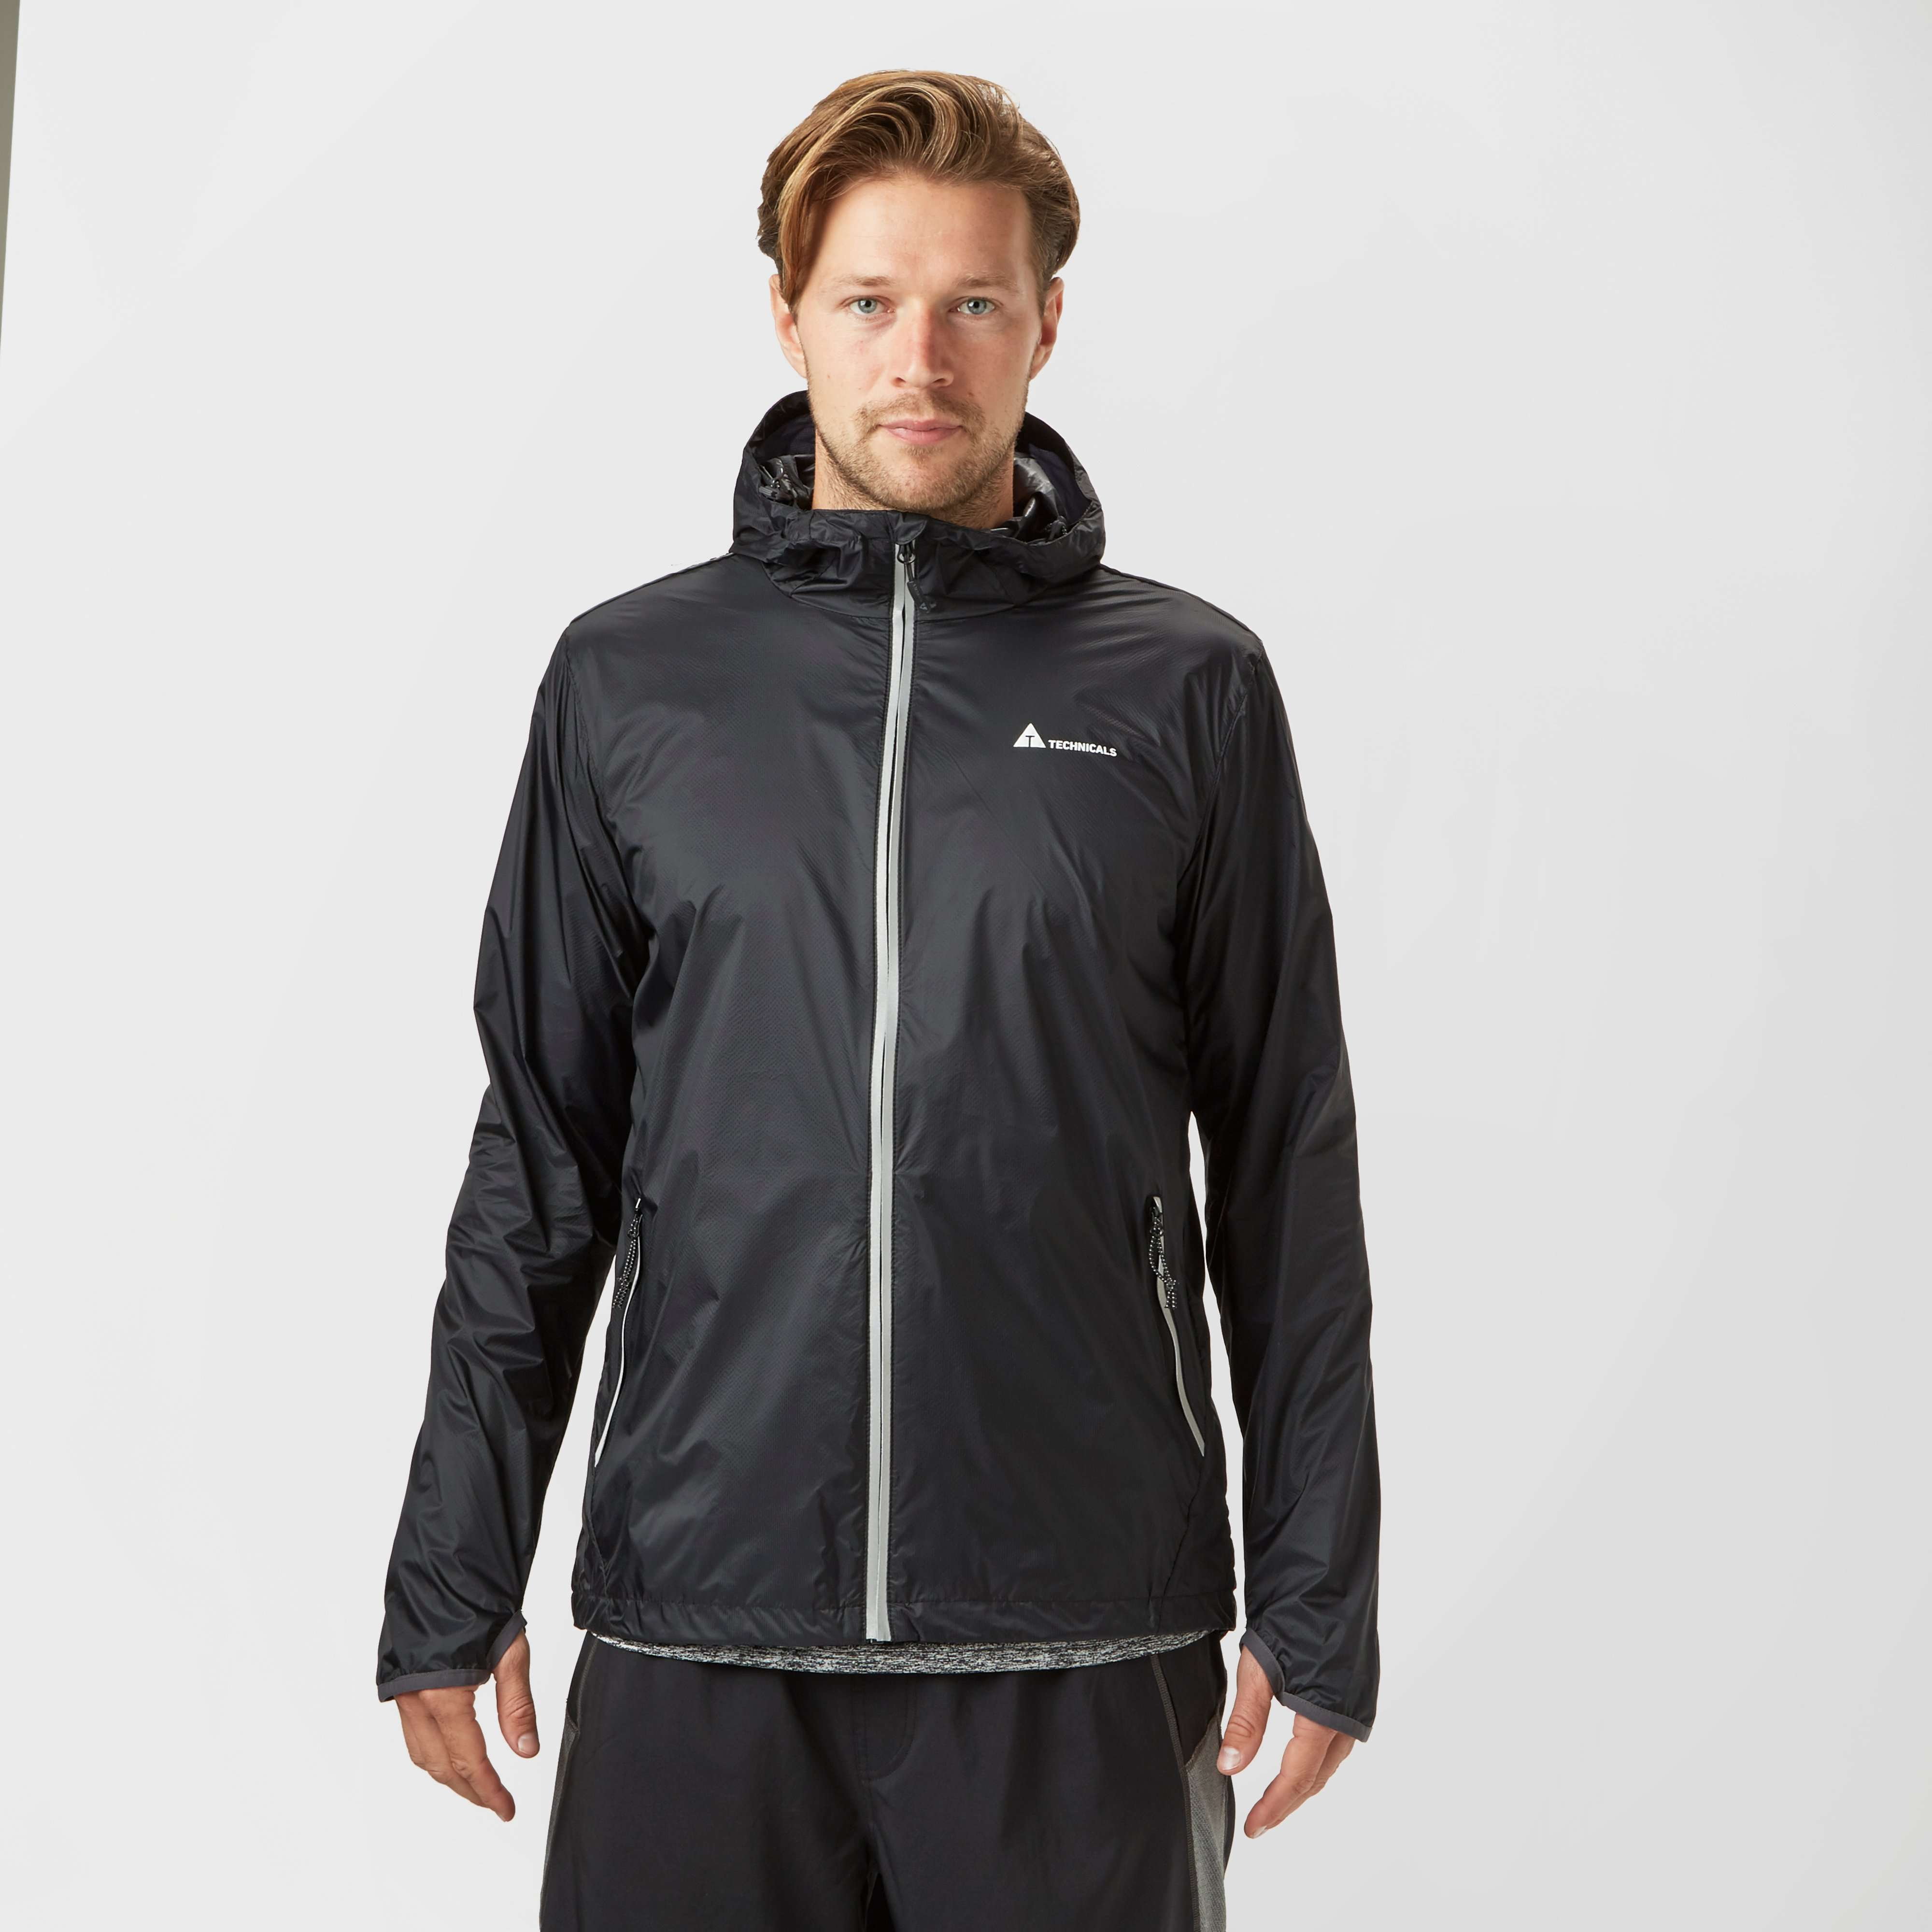 TECHNICALS Men's Runner Jacket